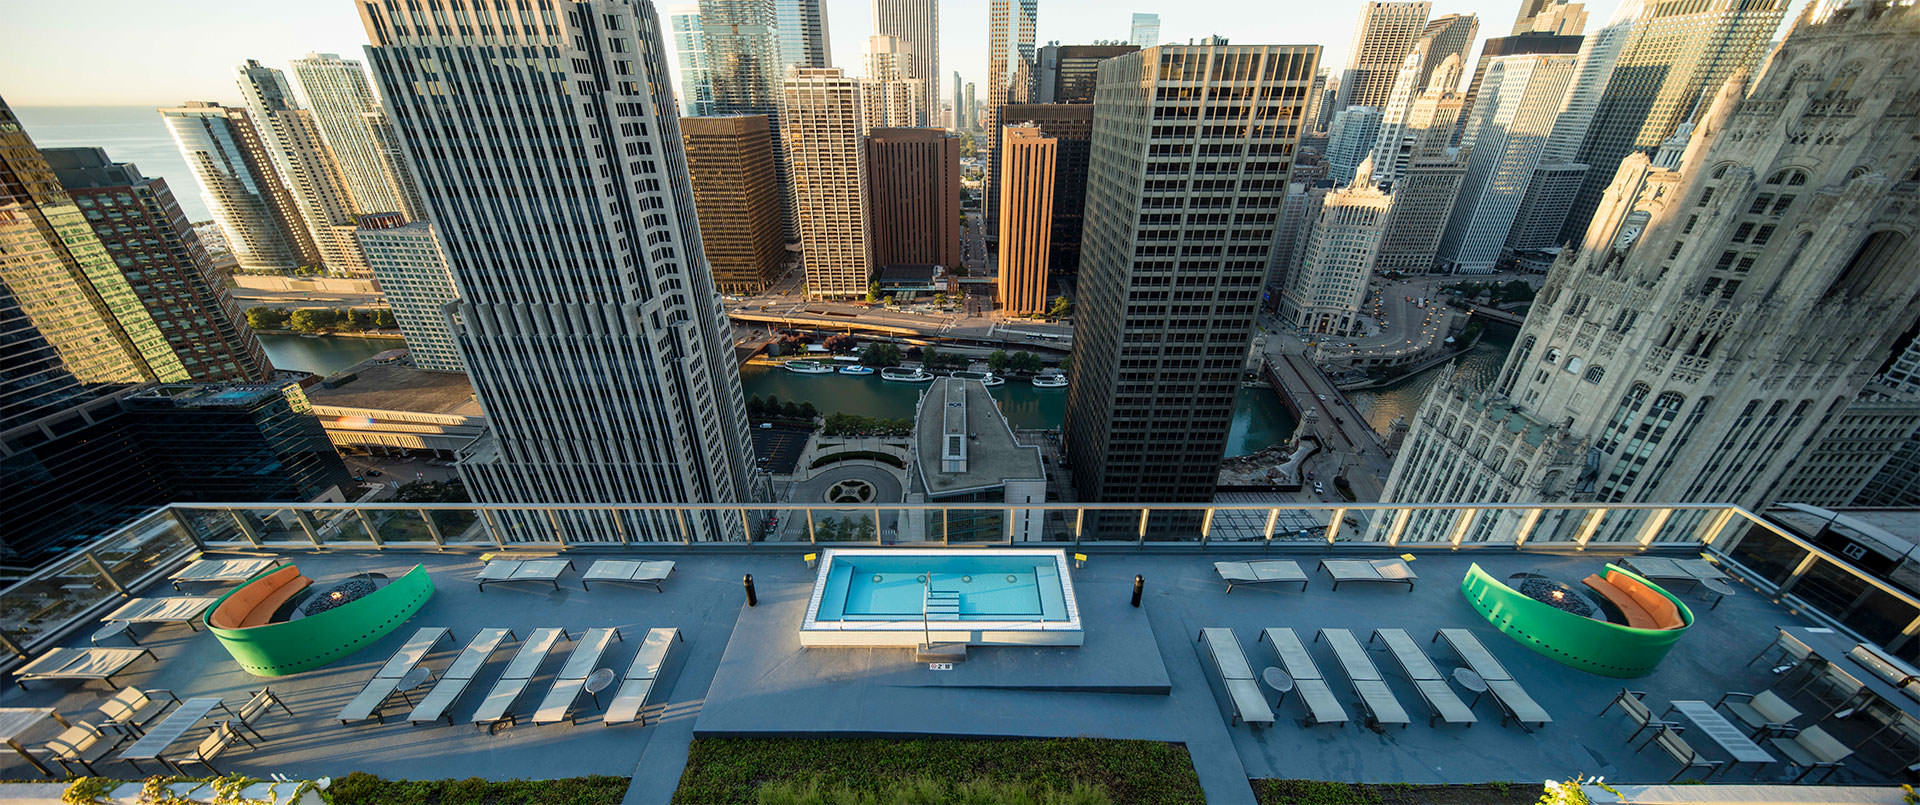 A bird's eye view of the patio shows that it overlooks many Chicago skyscrapers and the Chicago River.